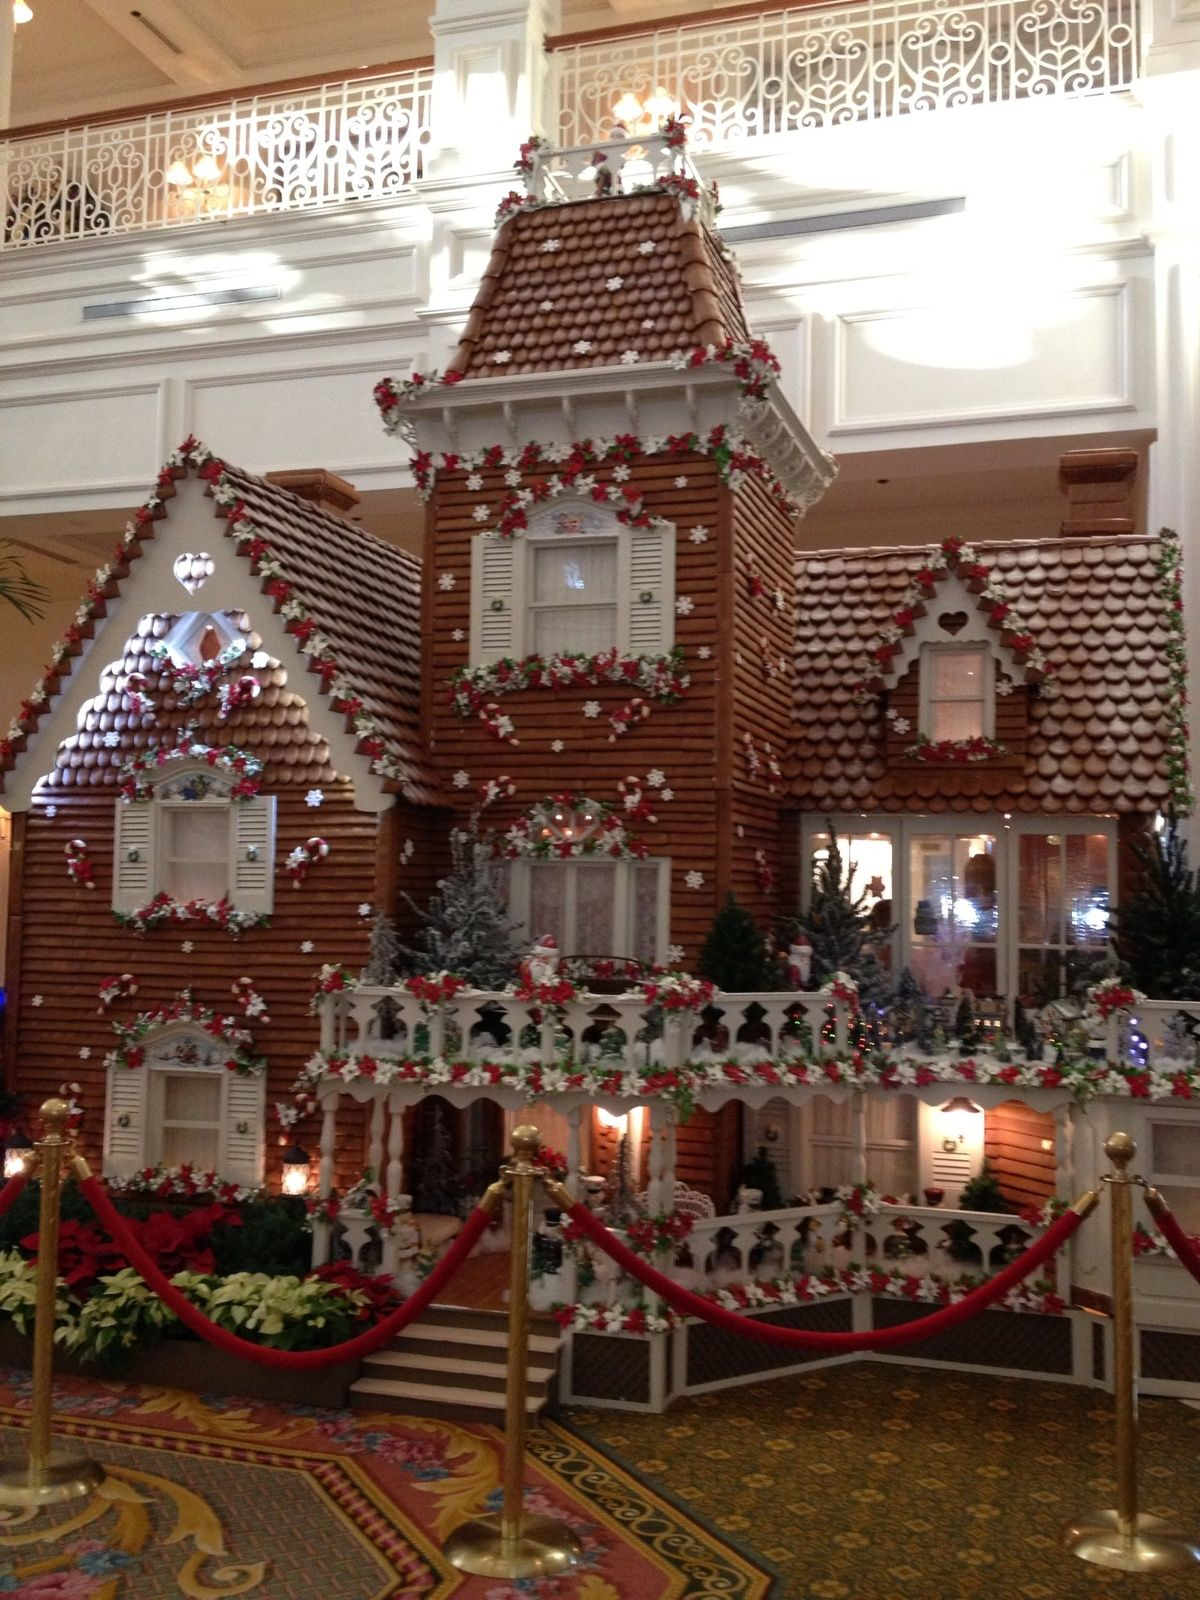 Life size ginger bread house at Disney World (With images